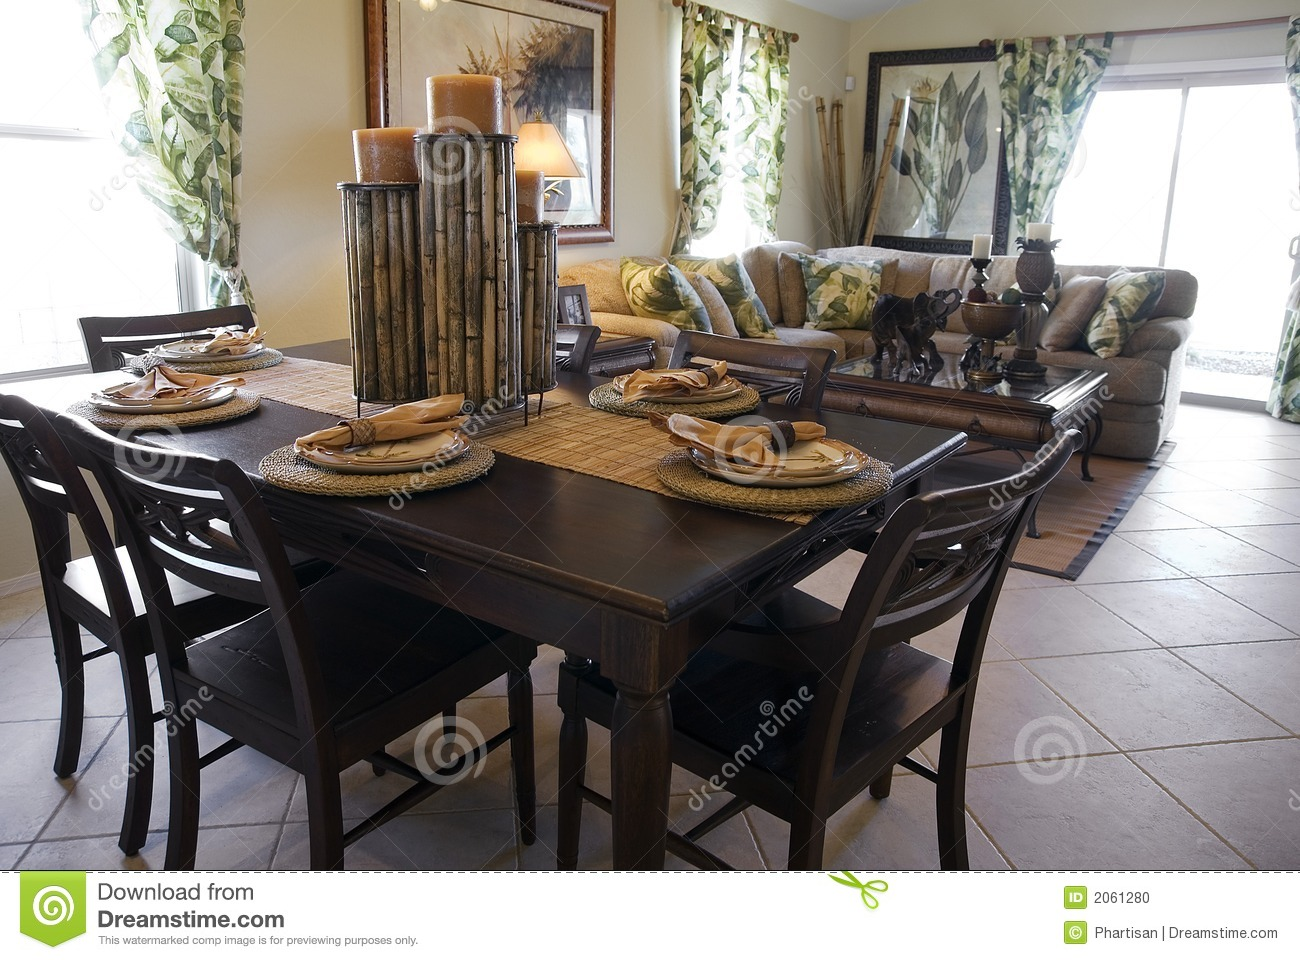 model home interior design stock photo - Model Home Interior Design